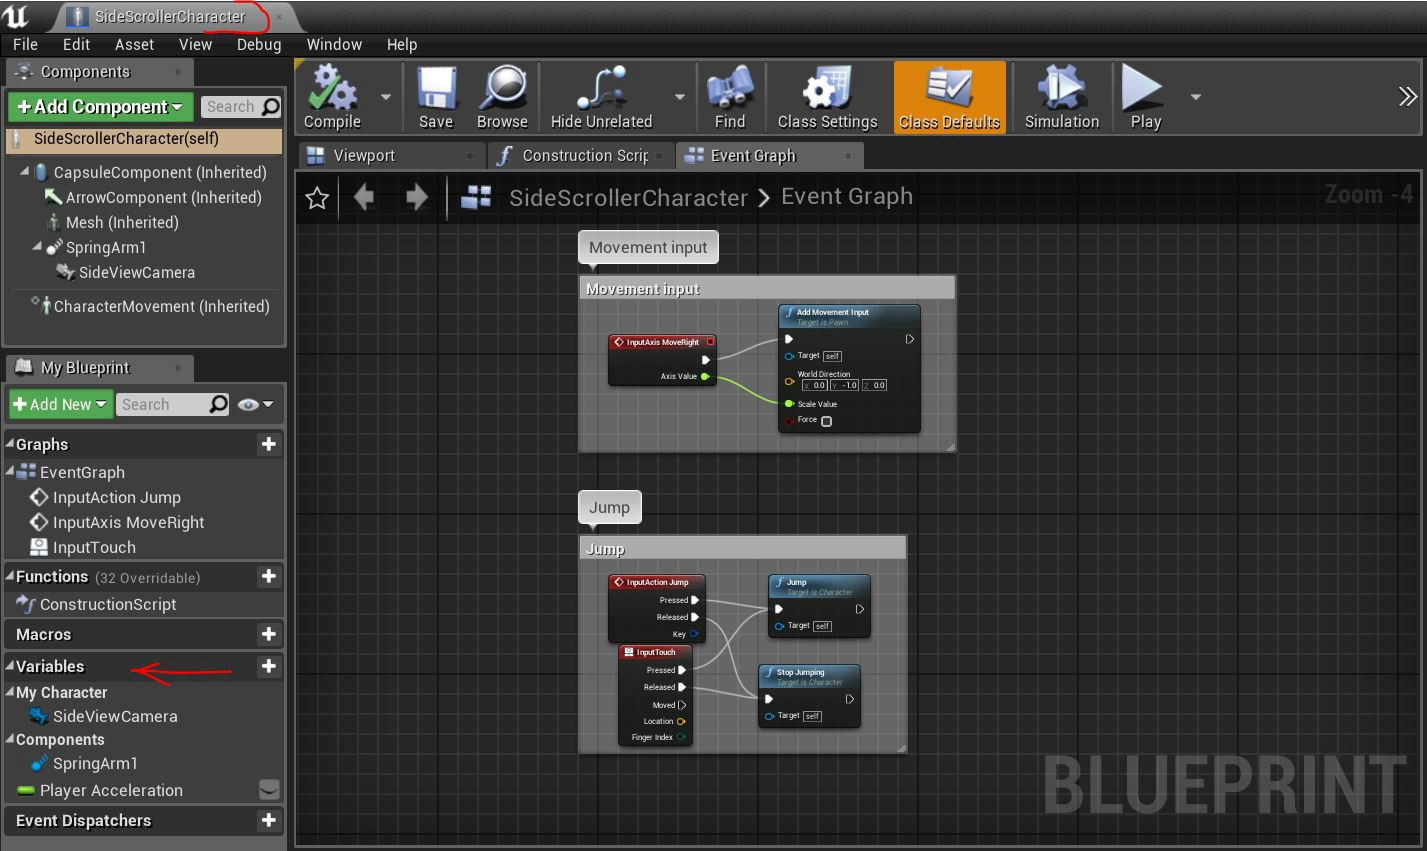 Creating a side-scroller mobile game with Unreal Engine 4